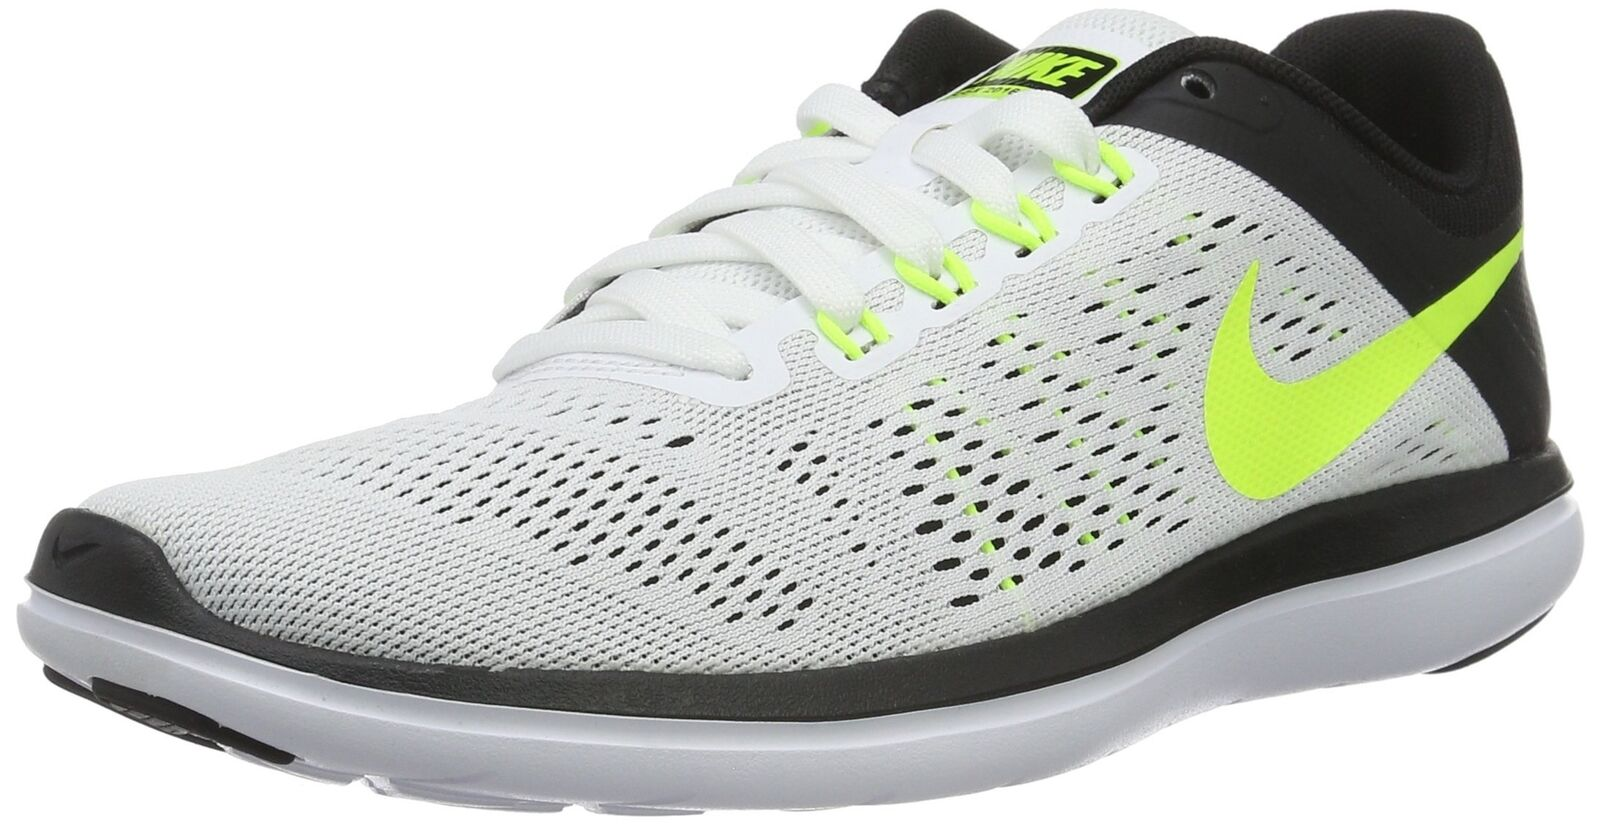 New shoes for men and women, limited time discount Men's Nike Flex 2018 RN Running Shoe White/Volt/Black Comfortable